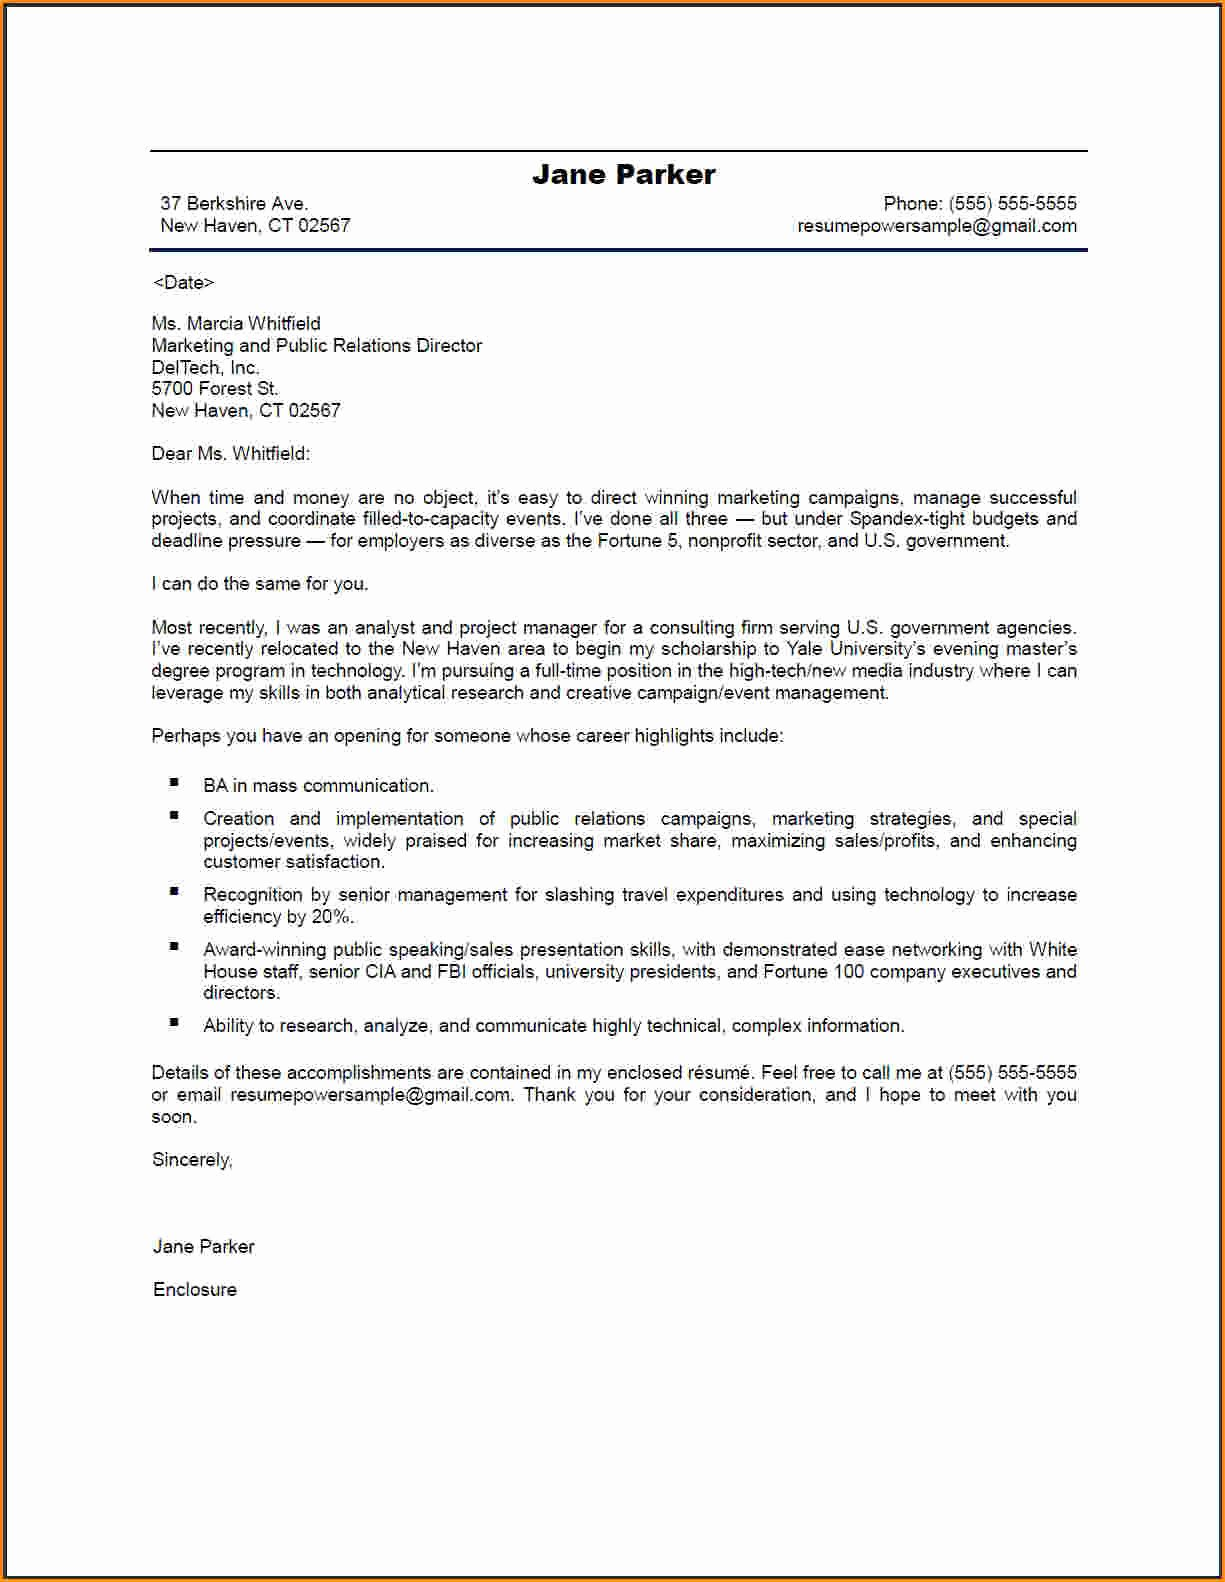 4 Good Cover Letters for Resume